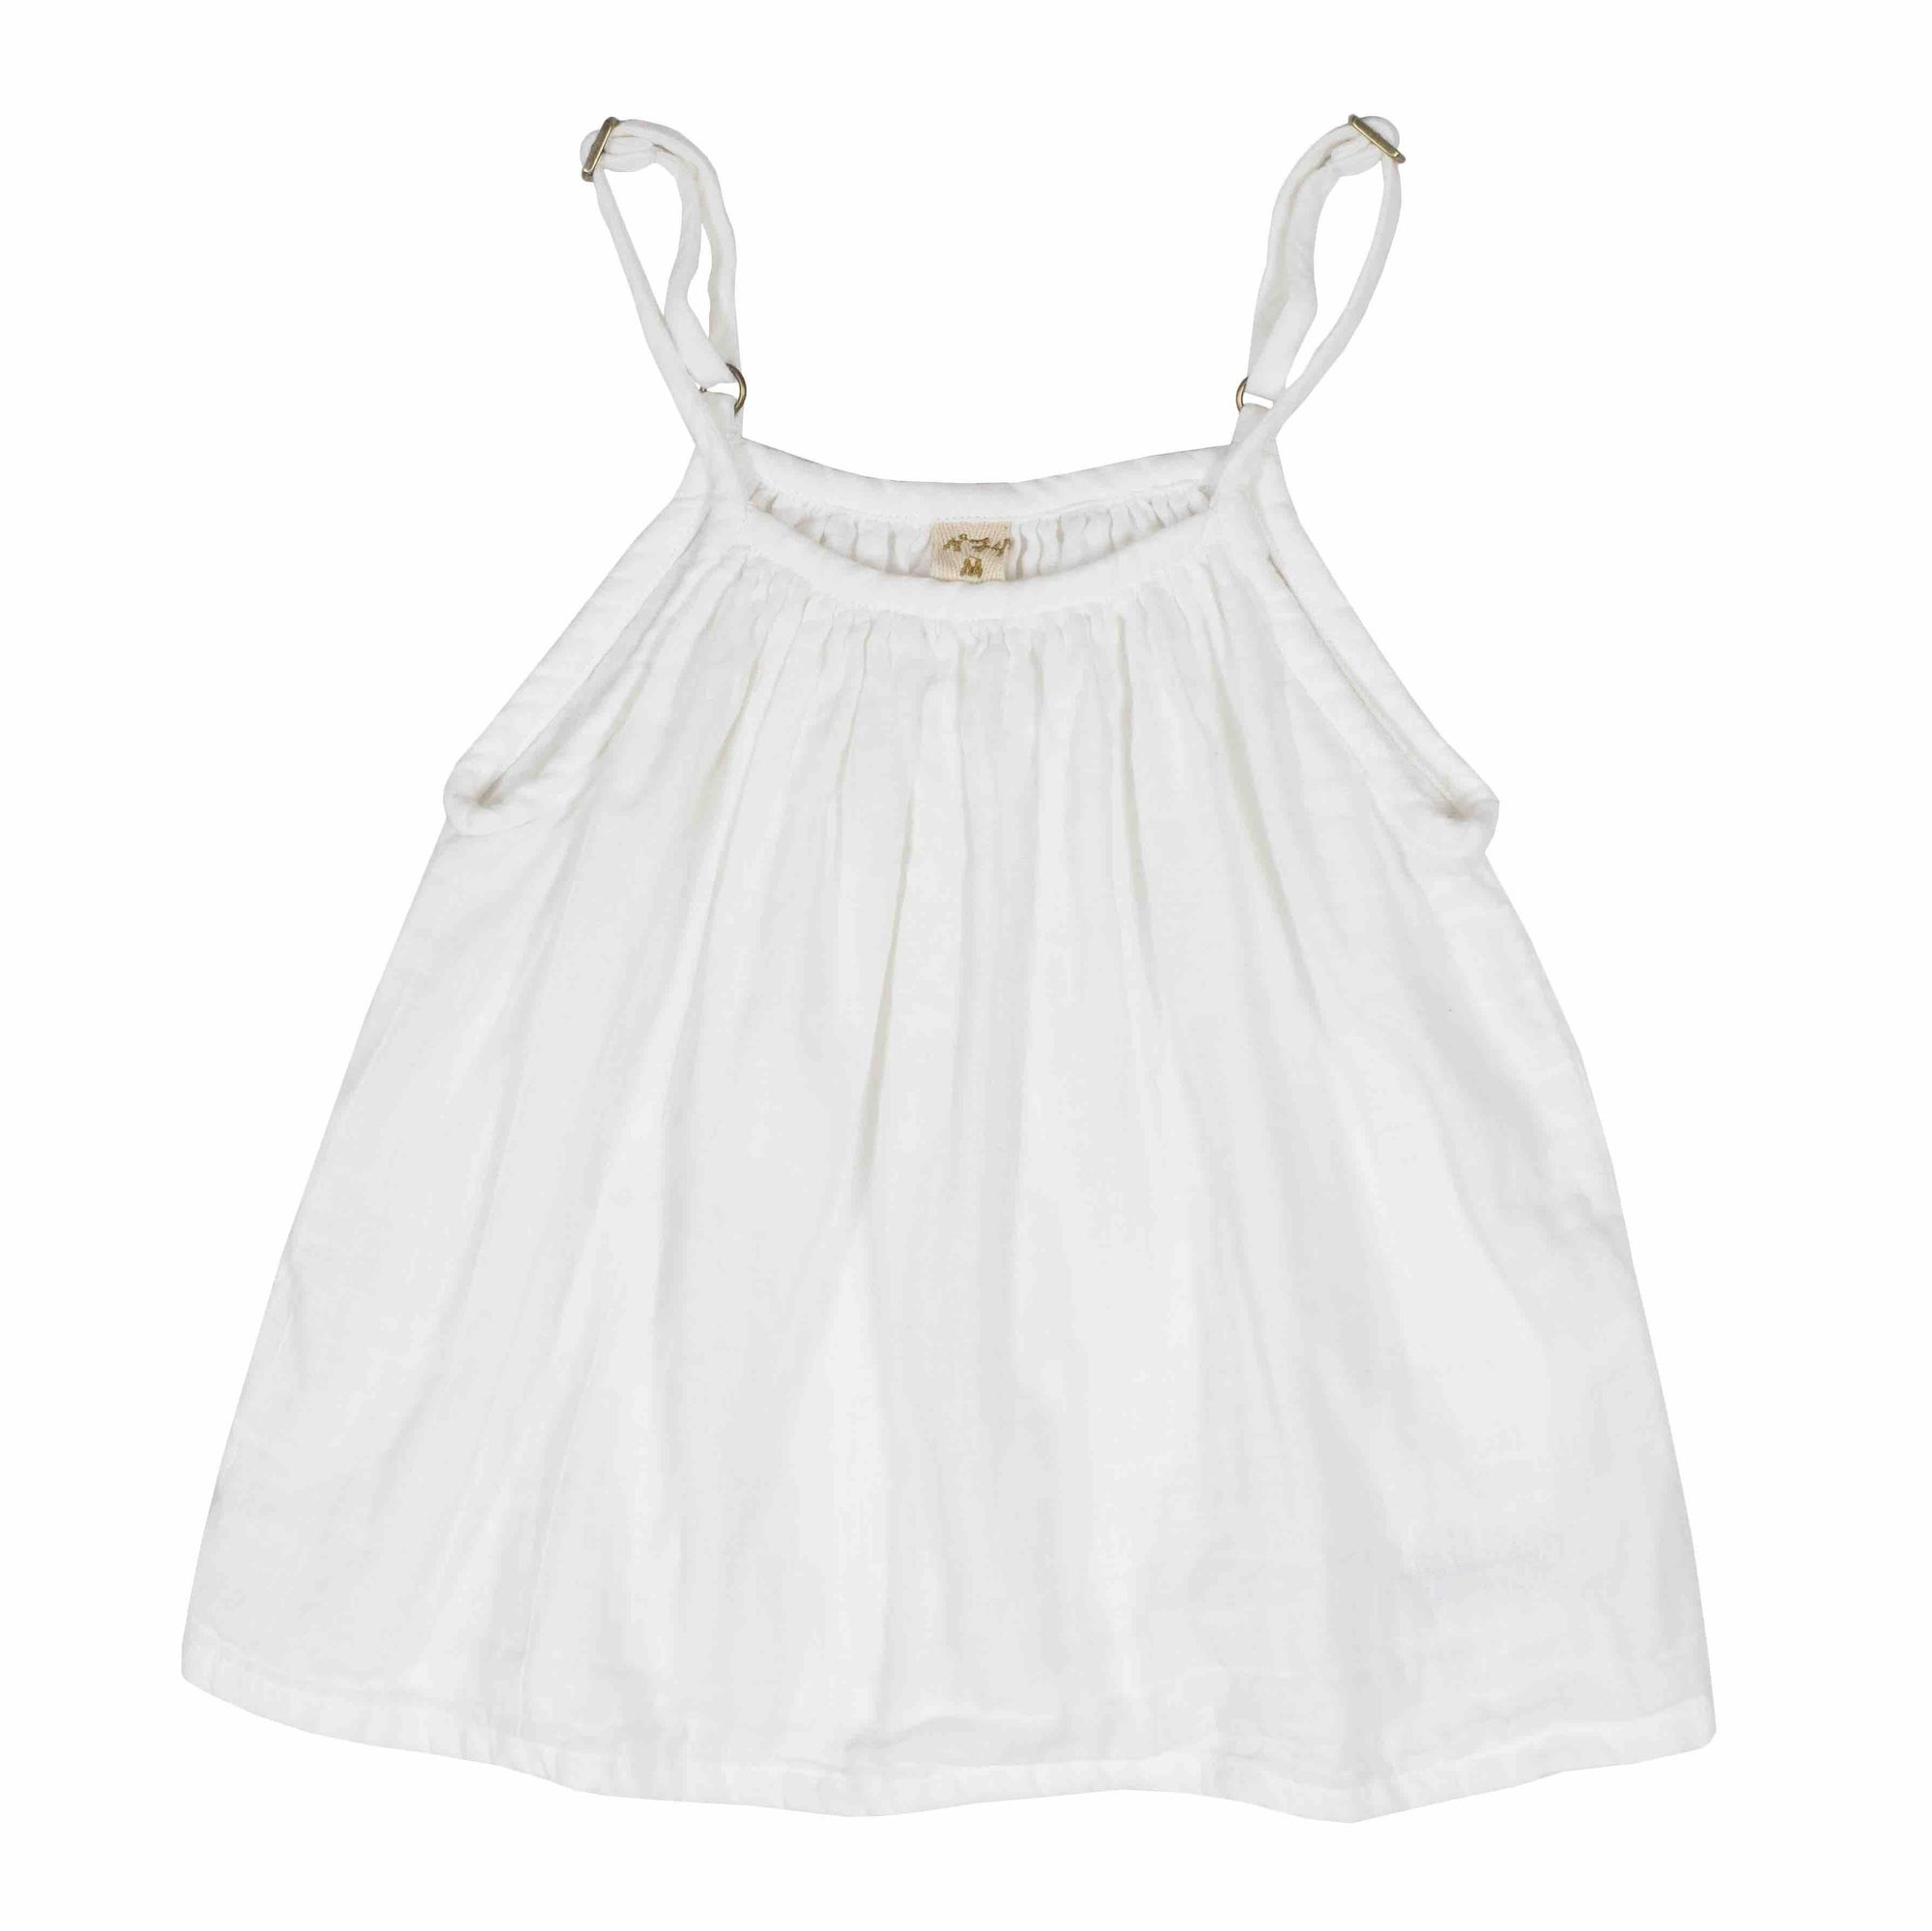 Numero 74 Mia Top White - Tiny People Cool Kids Clothes Byron Bay